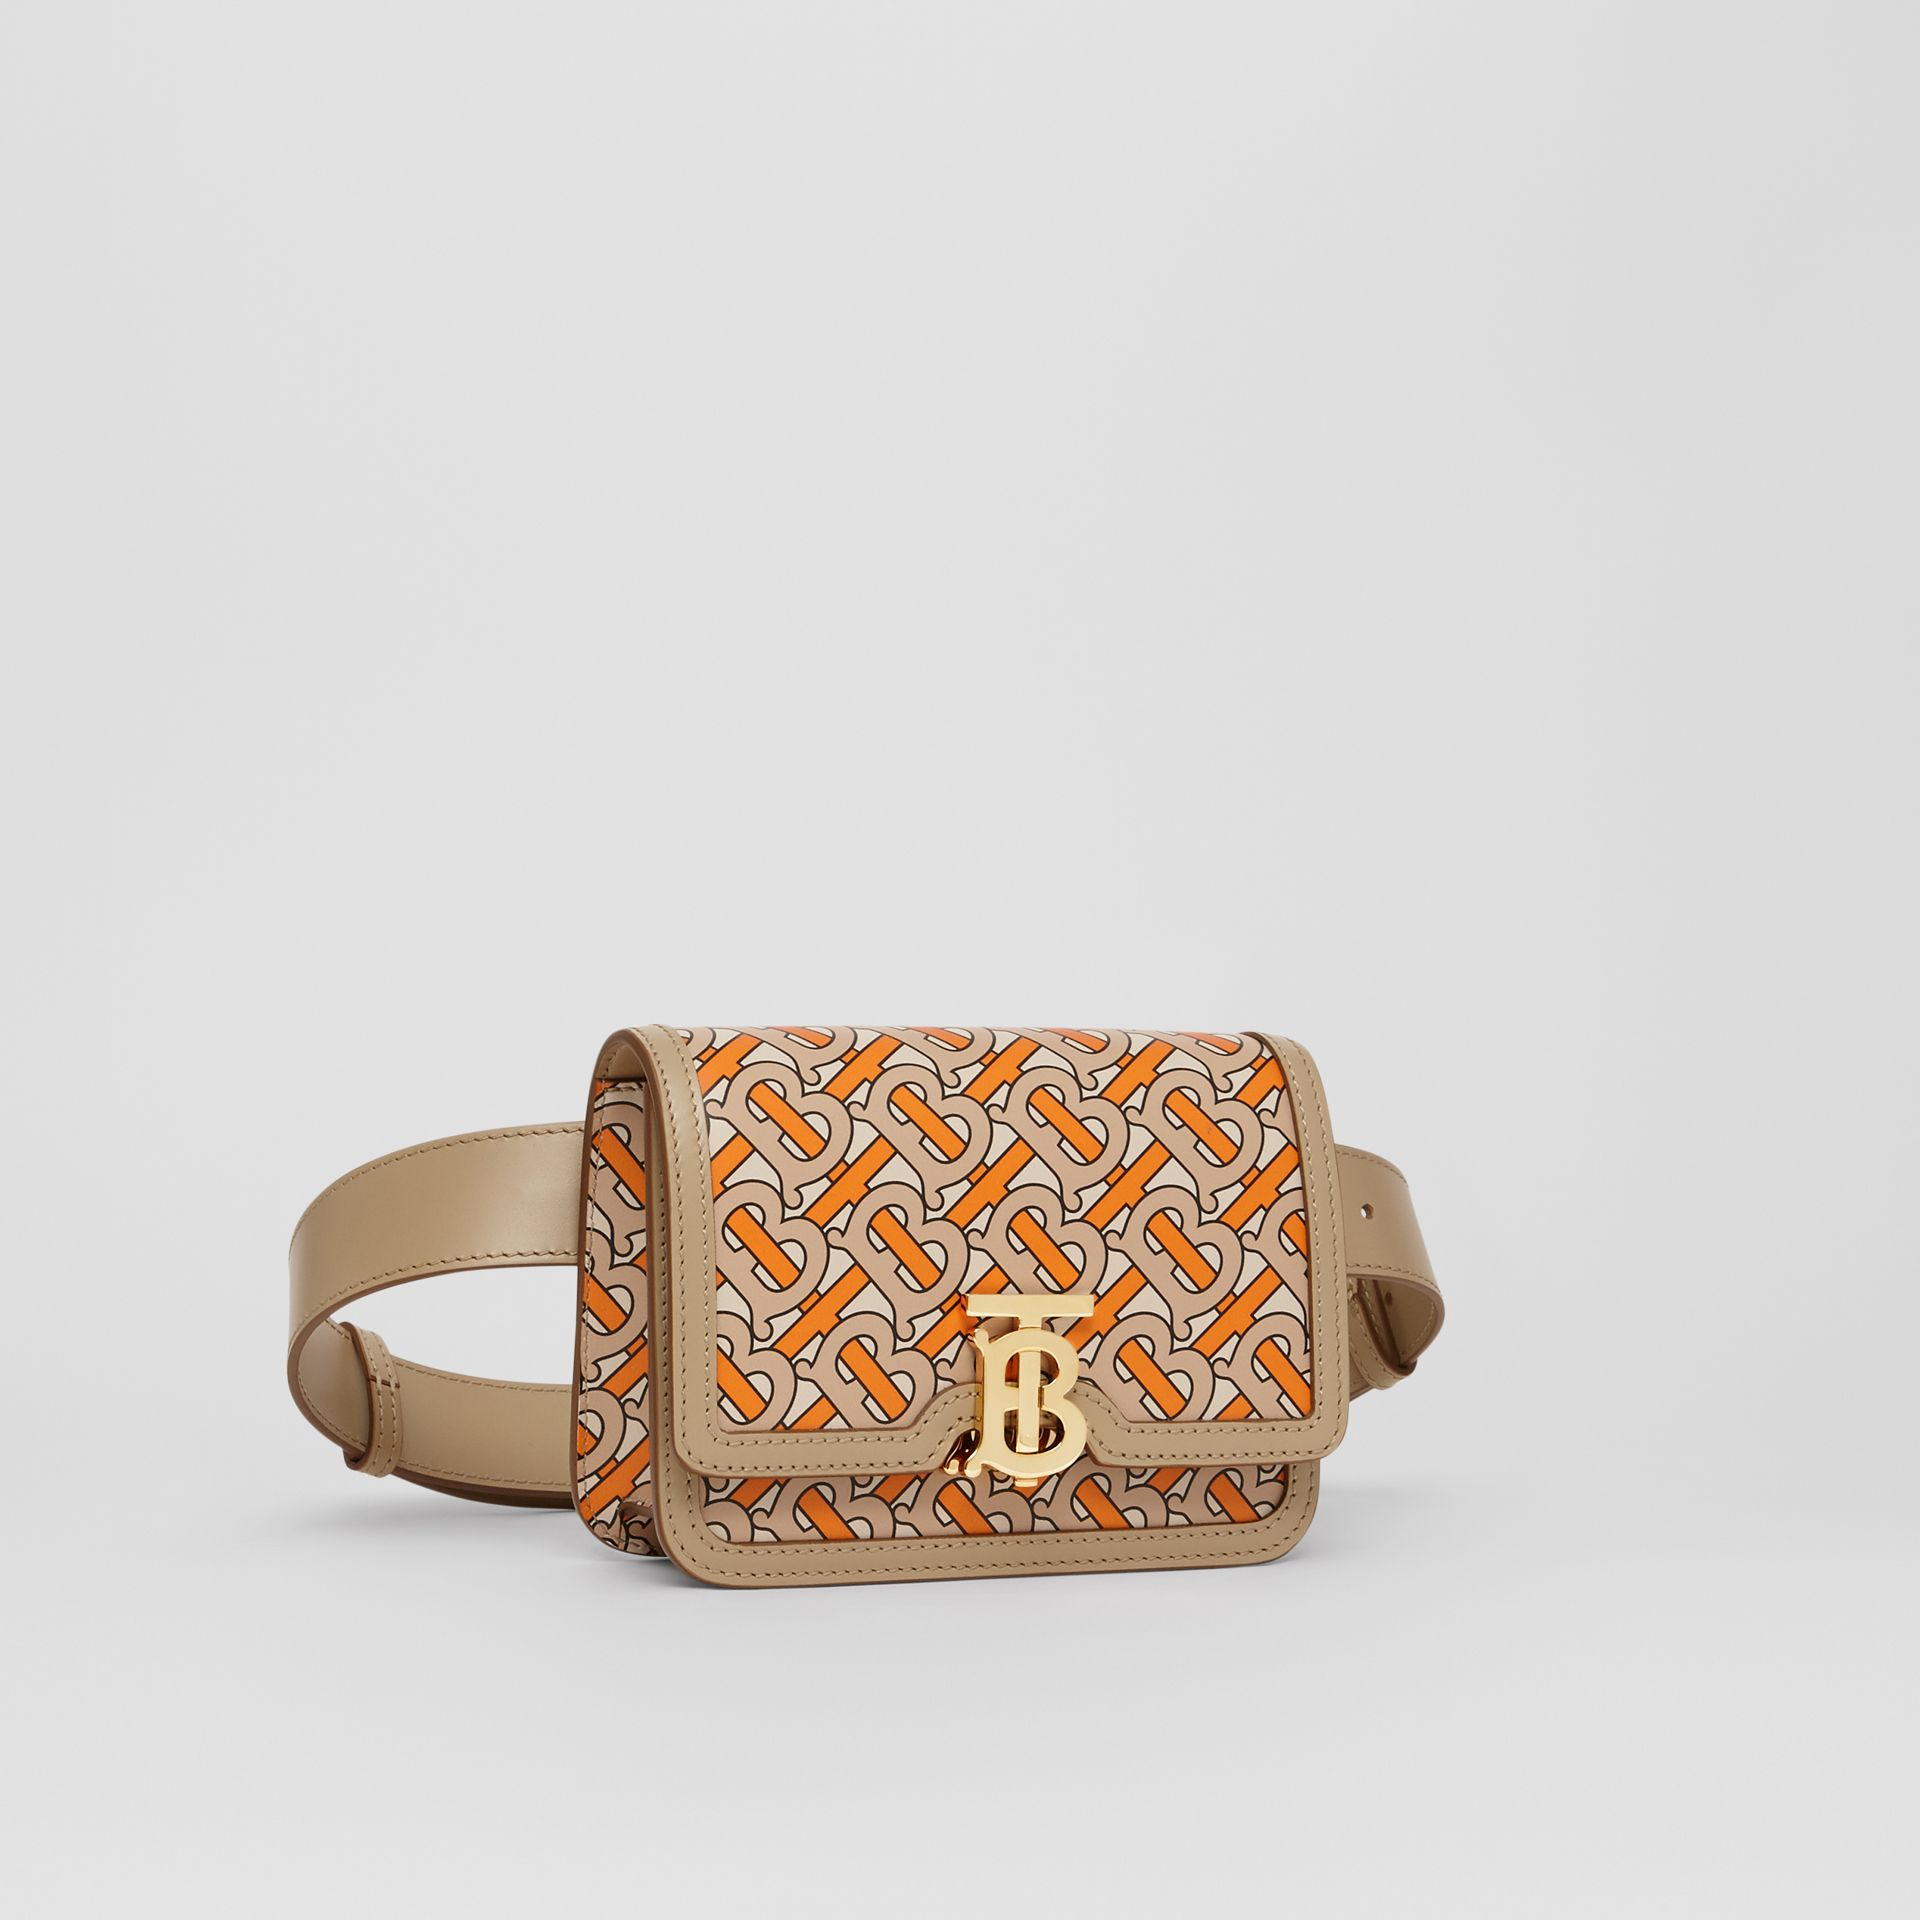 Belted Monogram Print Leather TB Bag in Bright Orange - Women | Burberry United States - gallery image 5